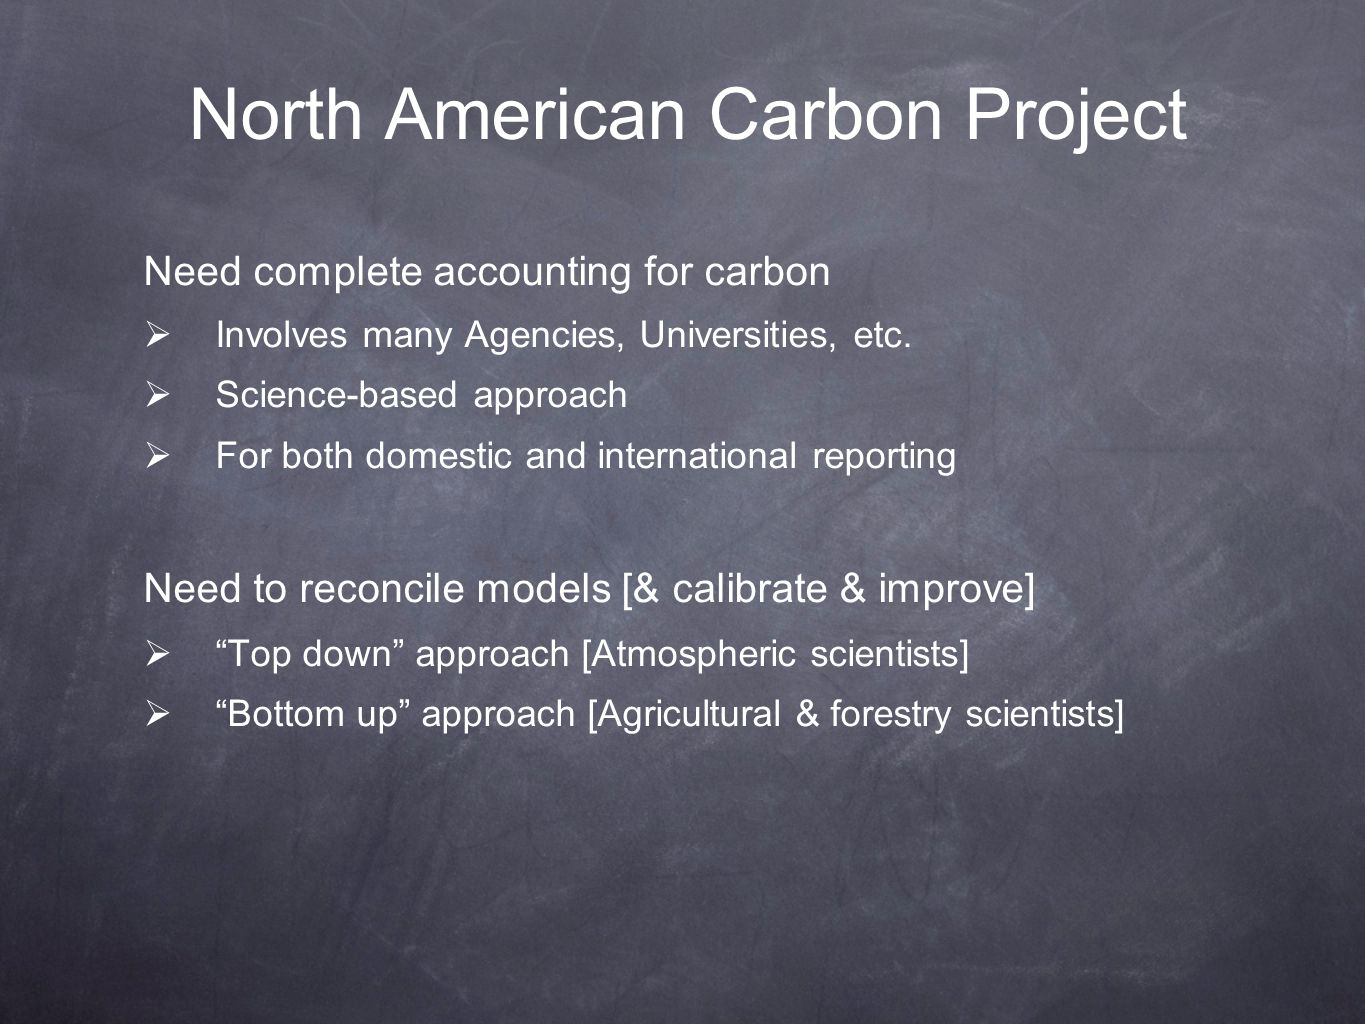 North American Carbon Project Need complete accounting for carbon Involves many Agencies, Universities, etc. Science-based approach For both domestic